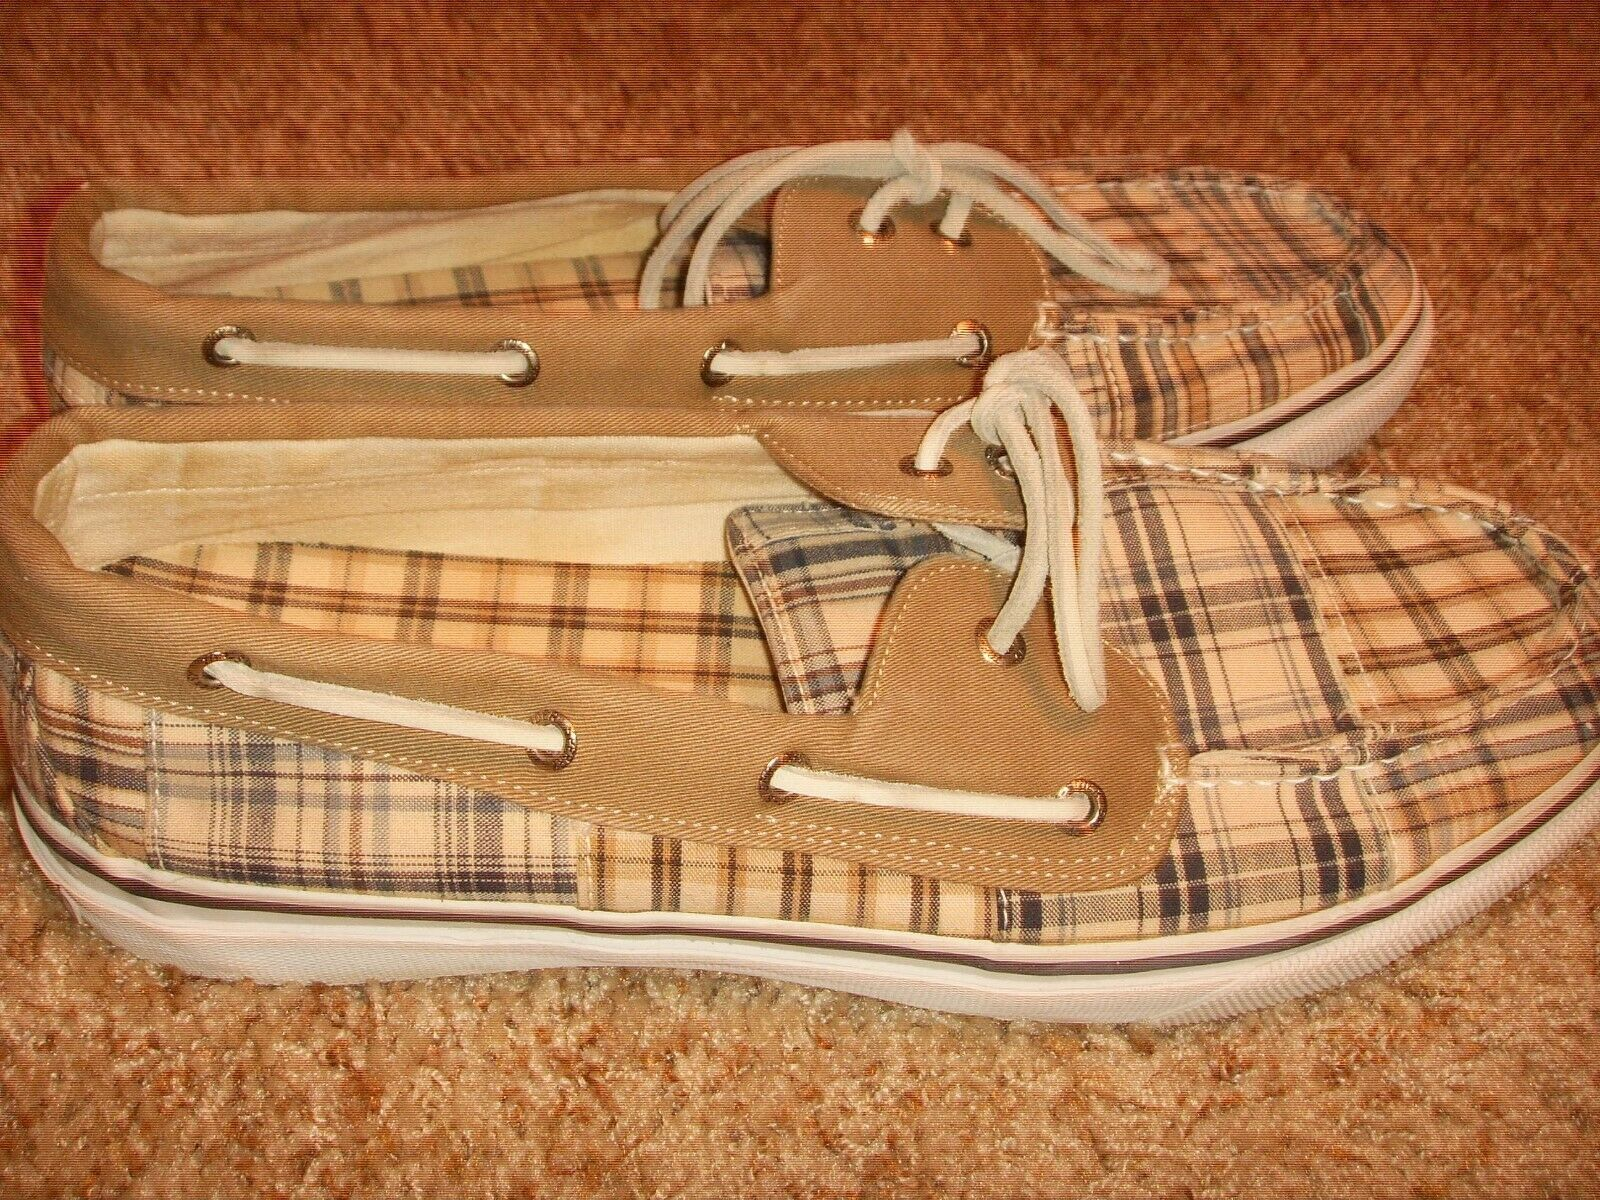 Sperry Topsider Plaid 0686840 Boat shoes Mens Size 13M